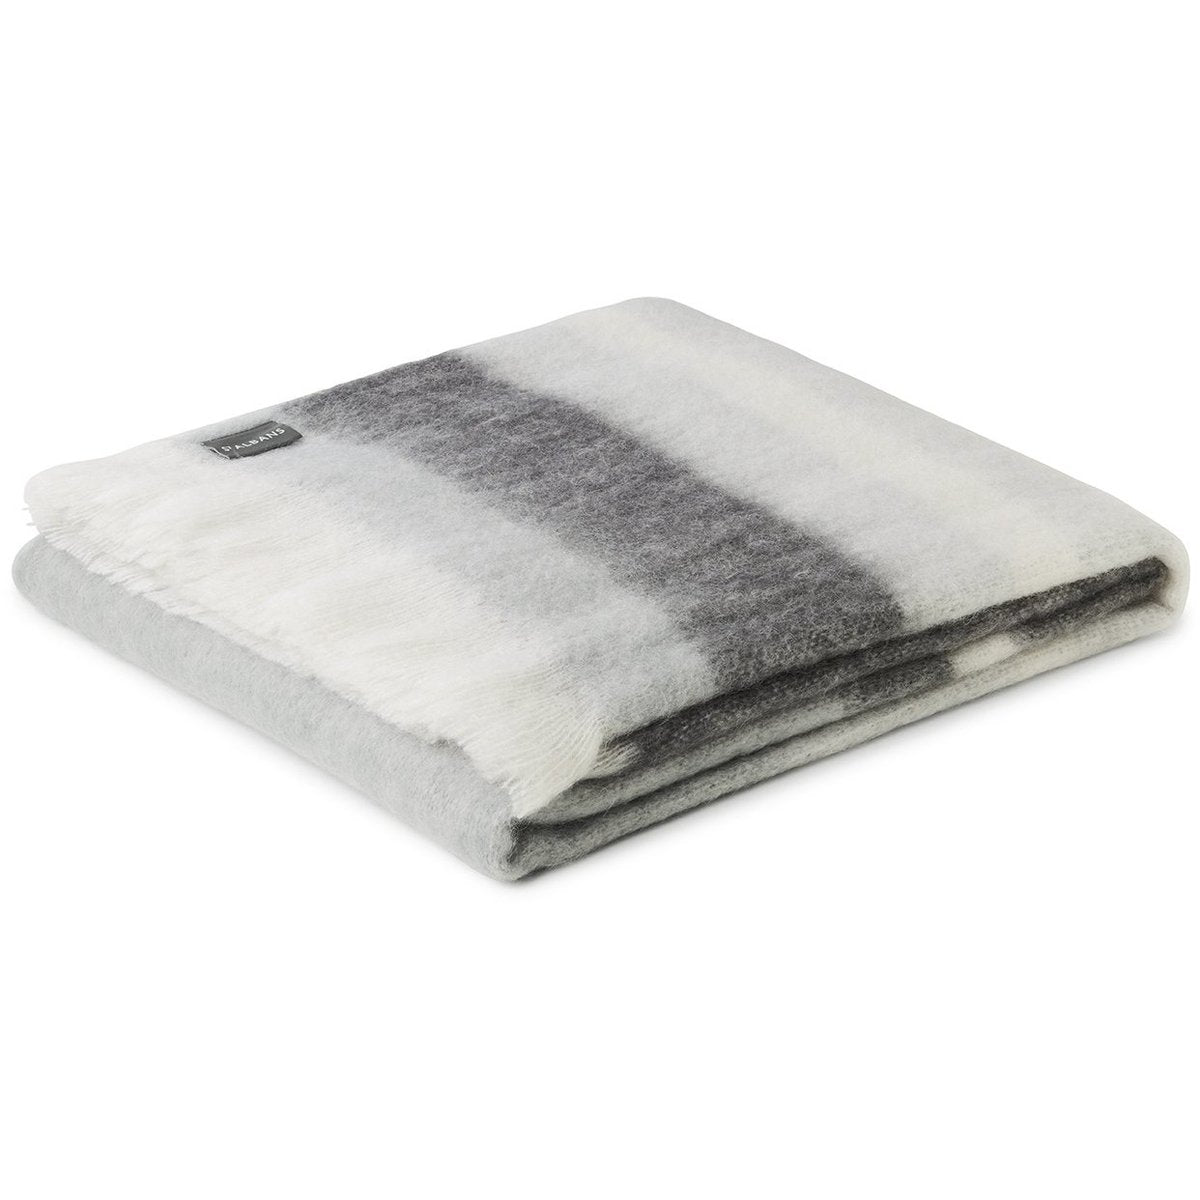 St Albans Mohair Hudson Throw is a contemporary design with stripes of light and dark greys with neutral undertones.